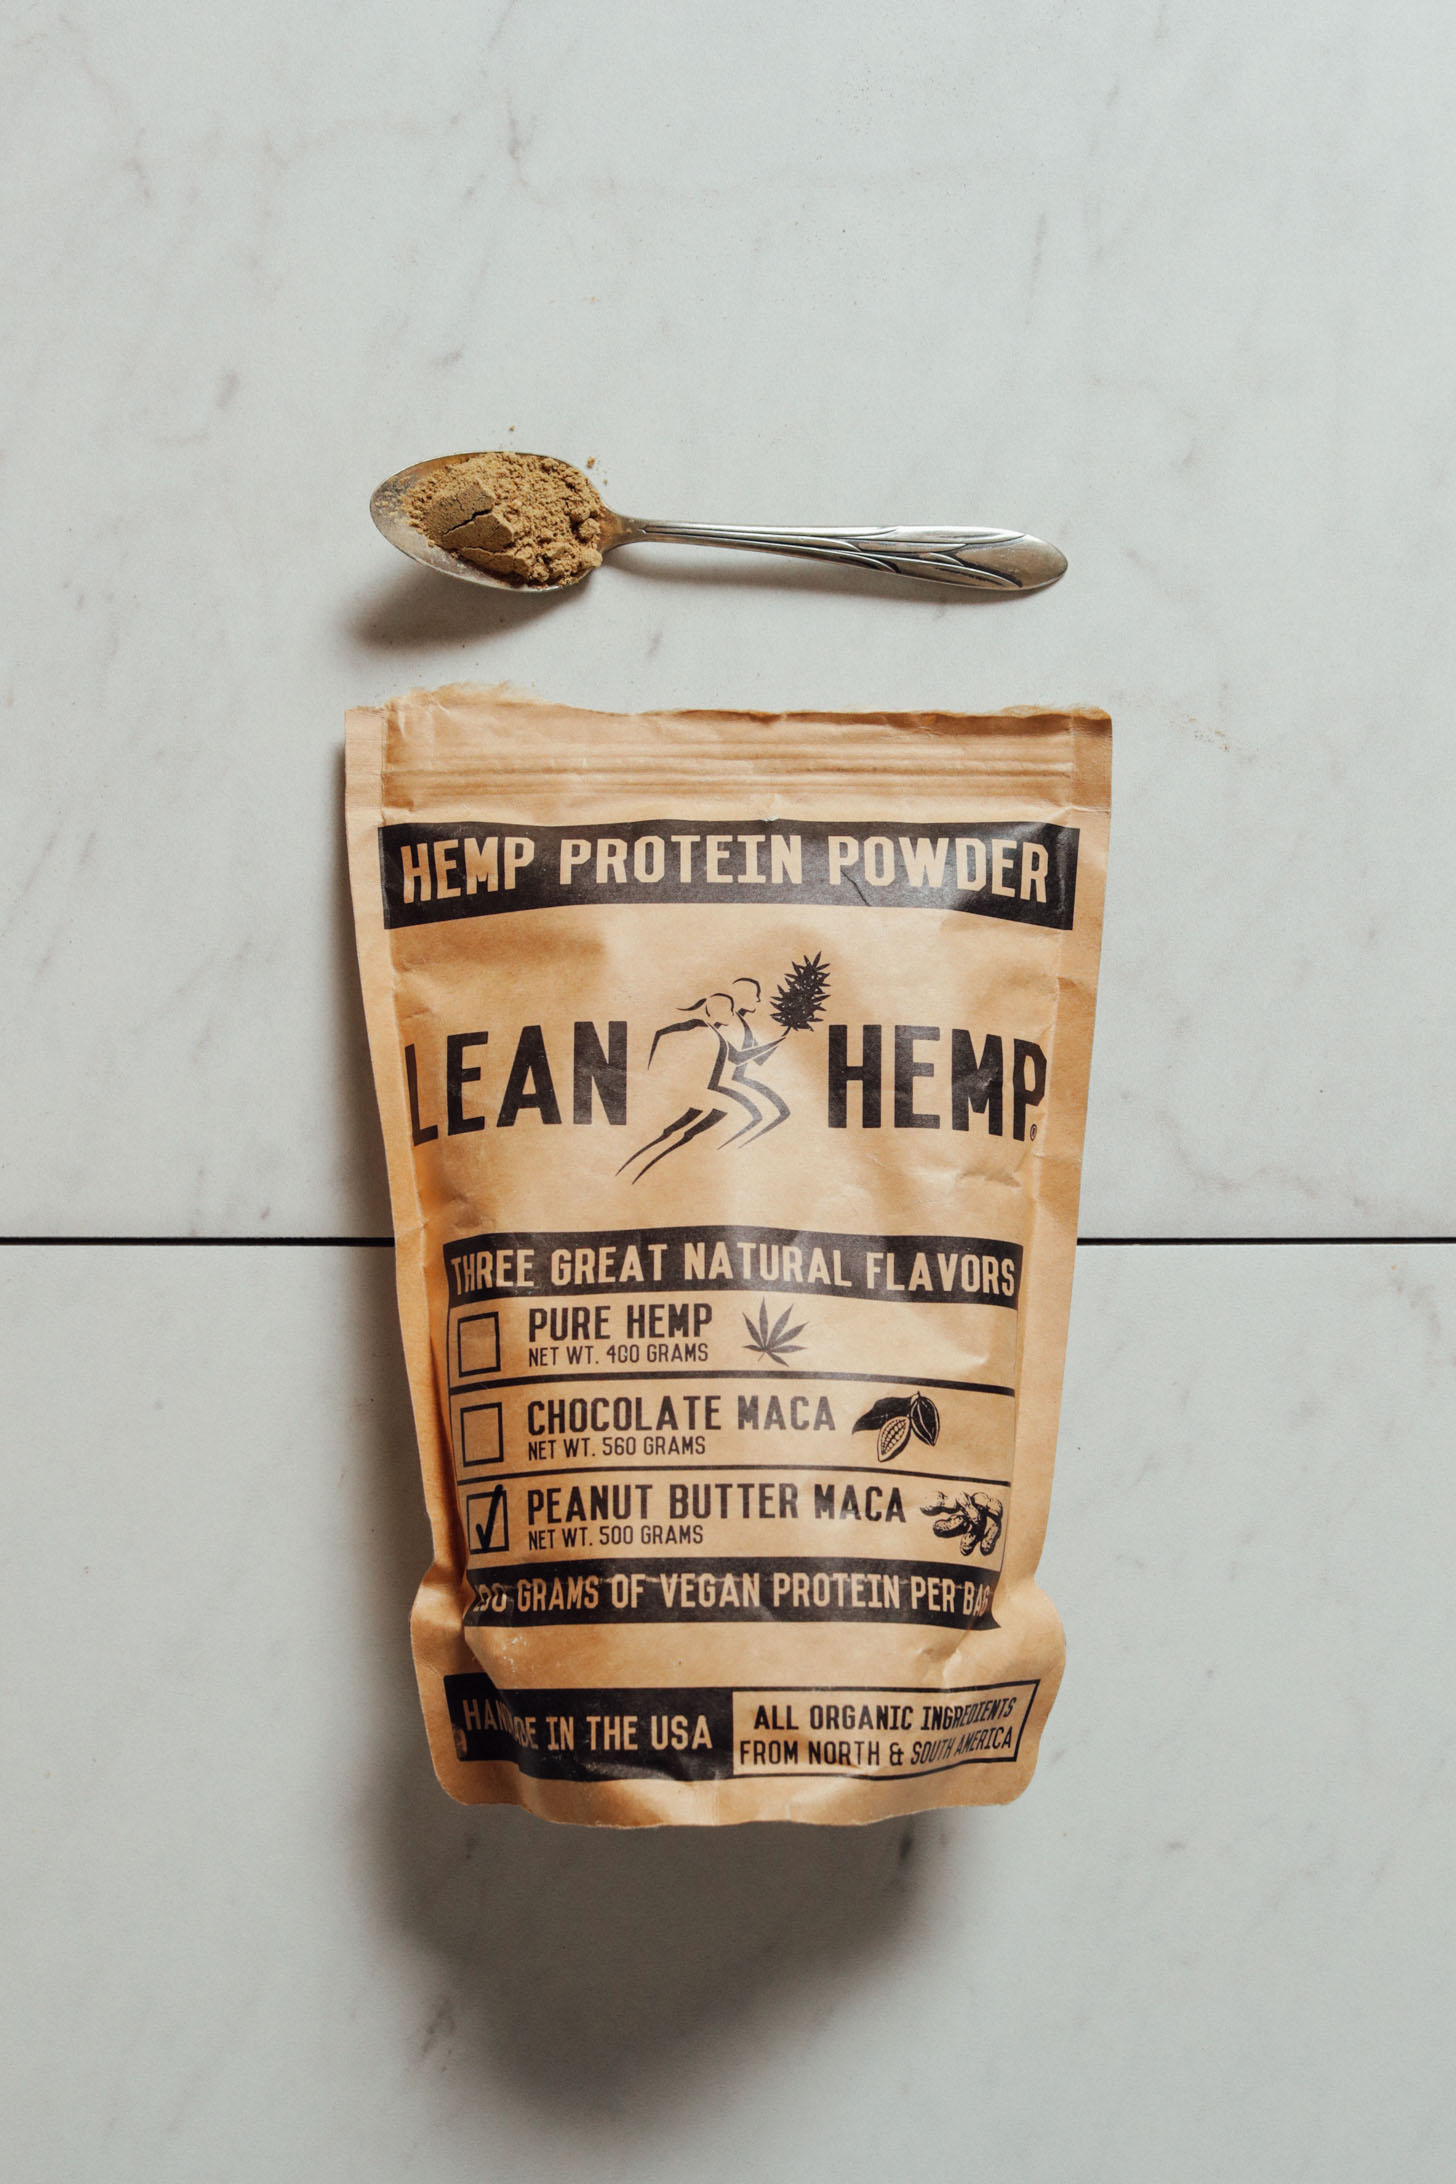 Pouch of Lean Hemp Peanut Butter Maca Protein Powder for our review